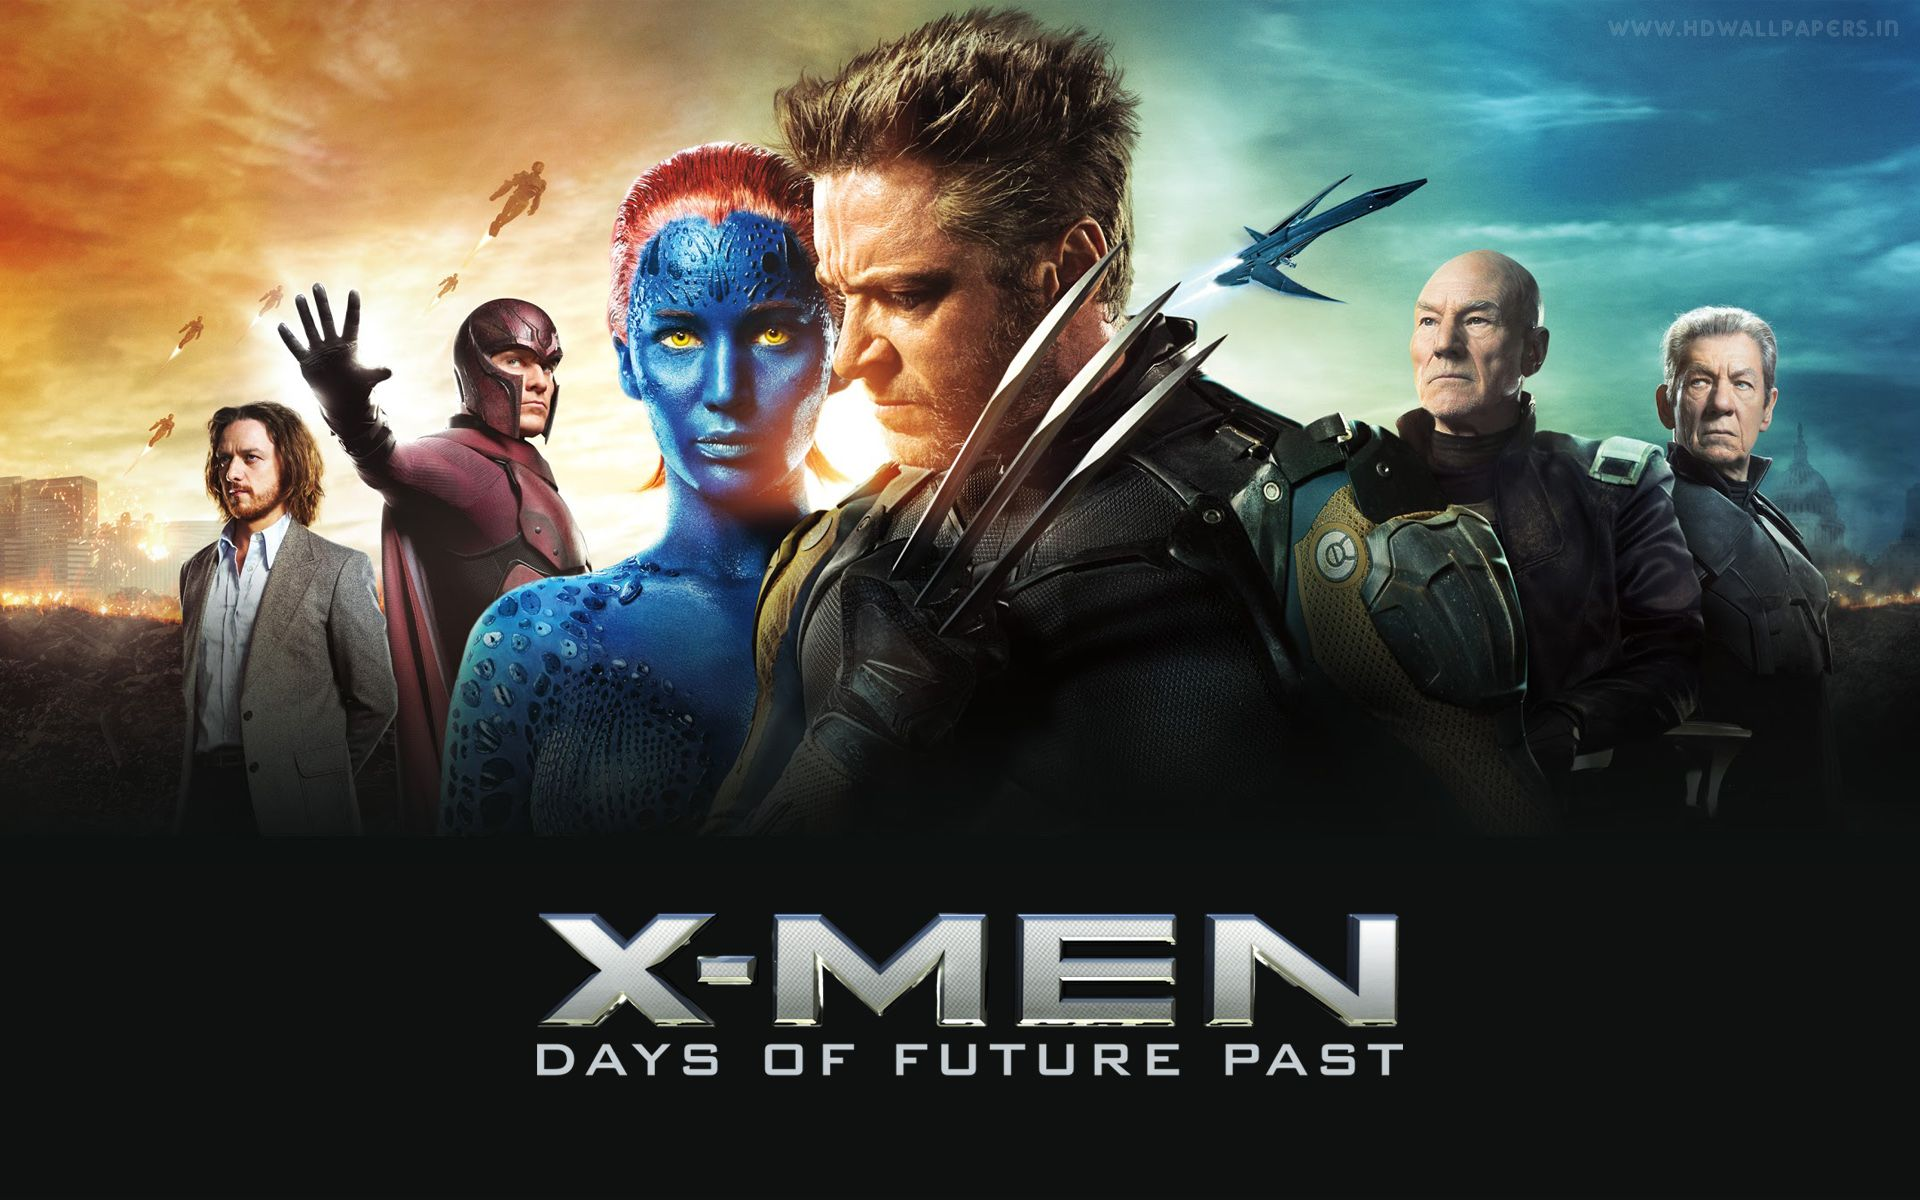 X Men Days Of Future Past Delivers The Goods Days Of Future Past X Men Man Movies